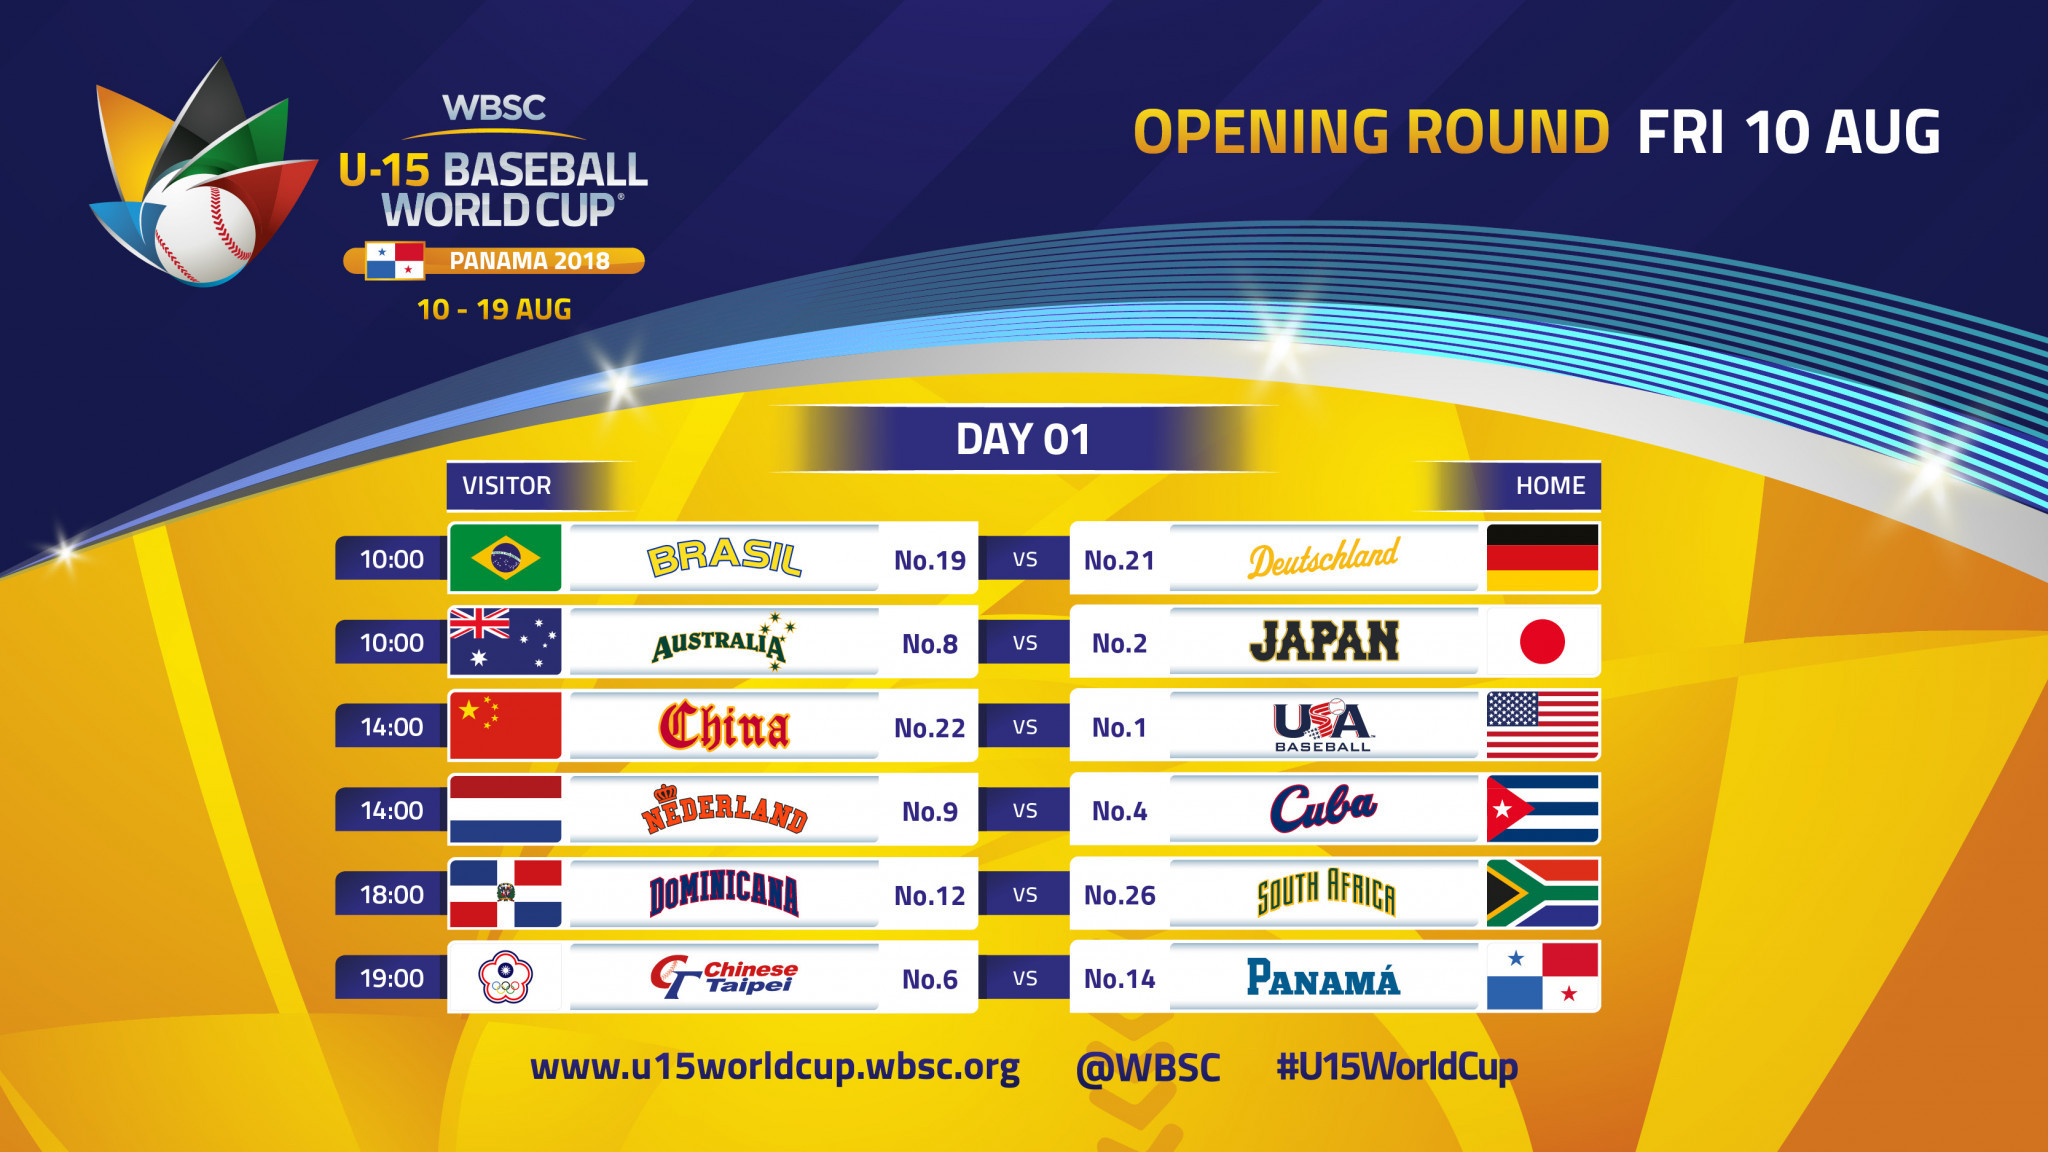 Game schedule announced for WBSC Under-15 Baseball World Cup in Panama